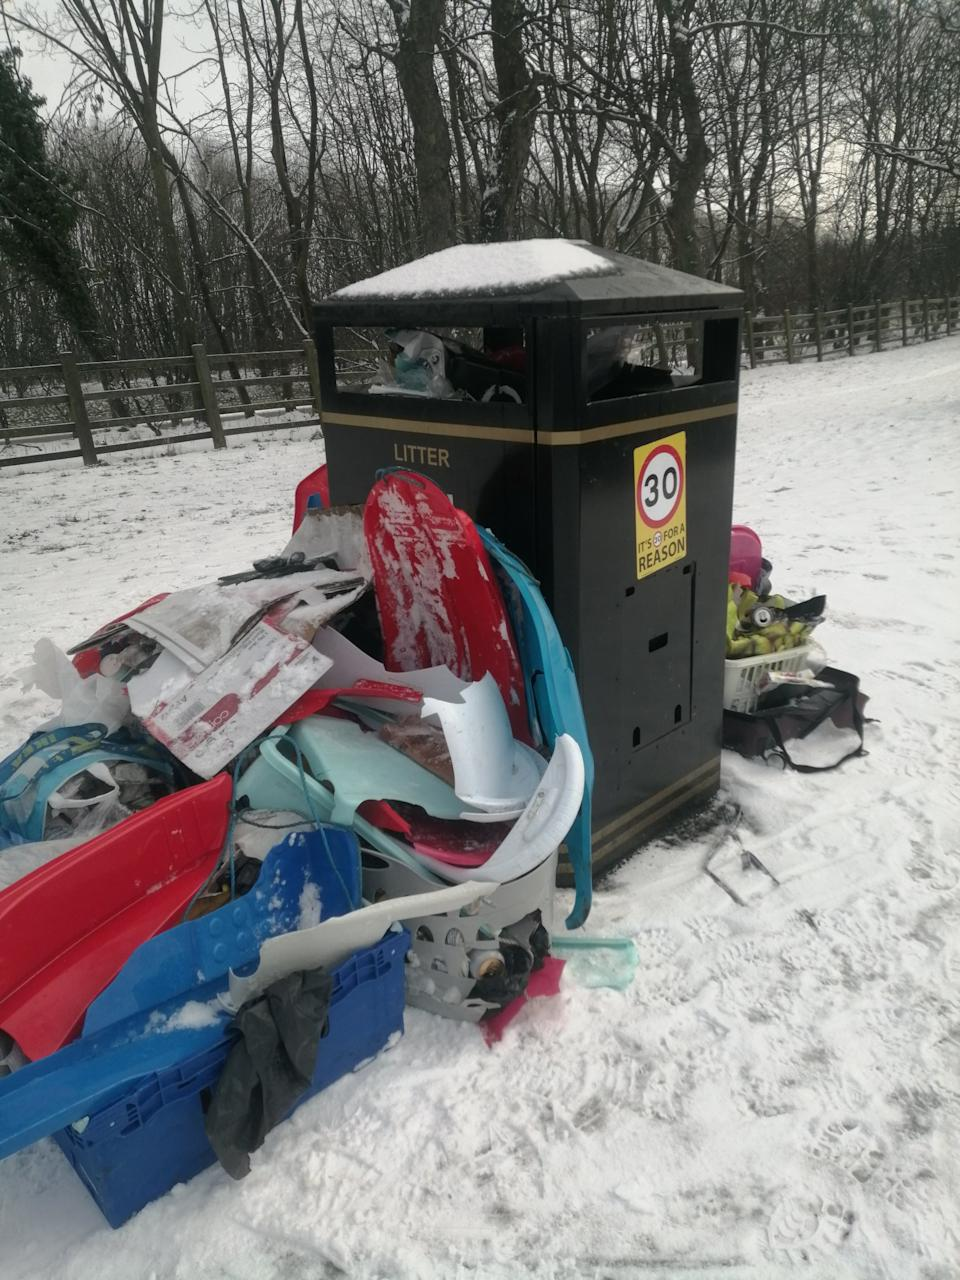 Twitter user DianeJojo10 posted a picture of a bin on the Moor saying